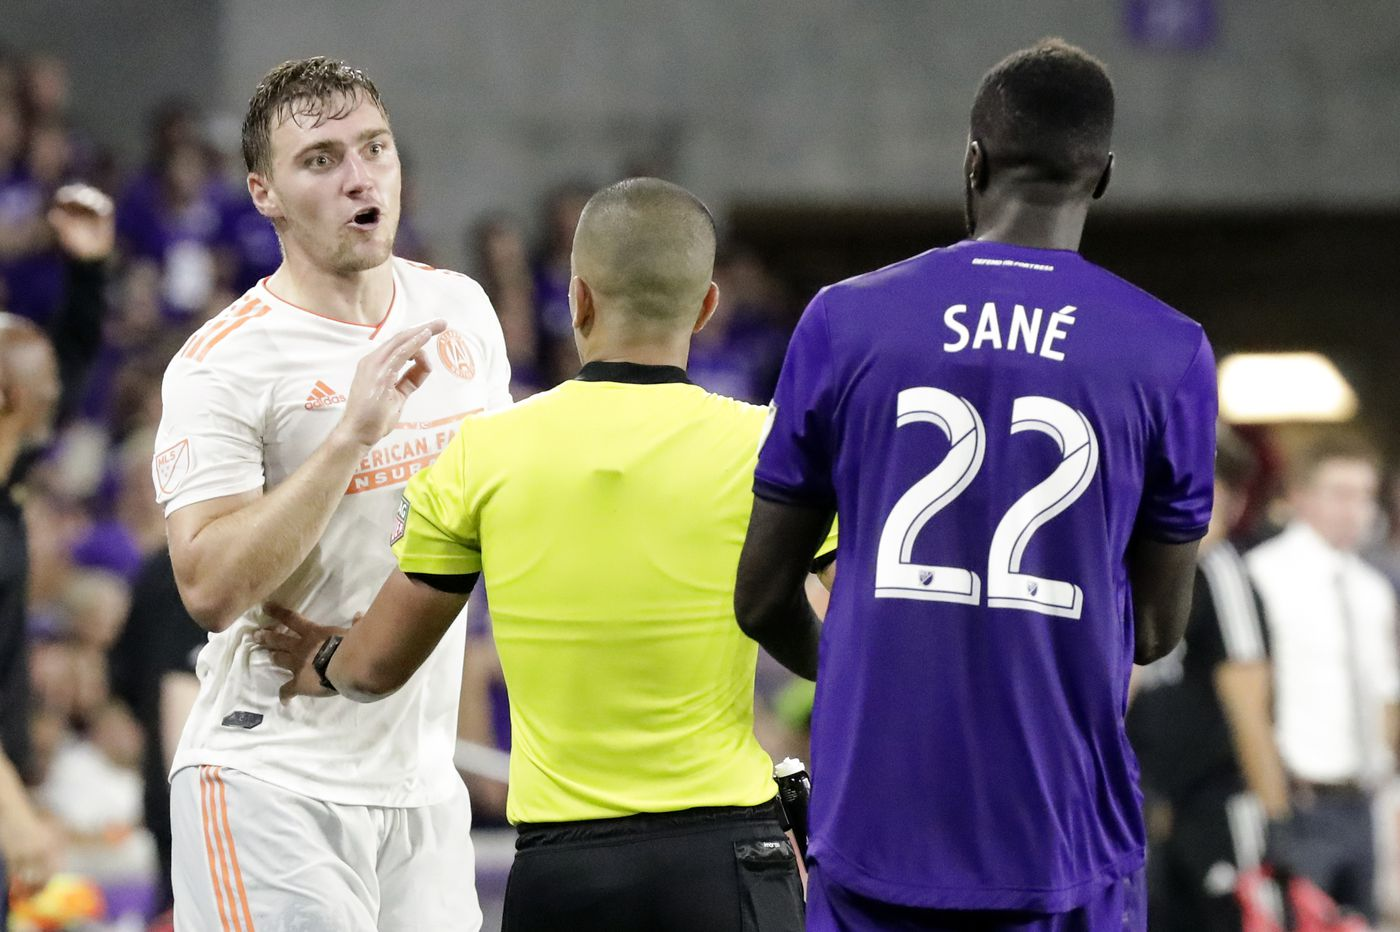 MLS lets Atlanta United's Julian Gressel off the hook for face slap, angering Union and others